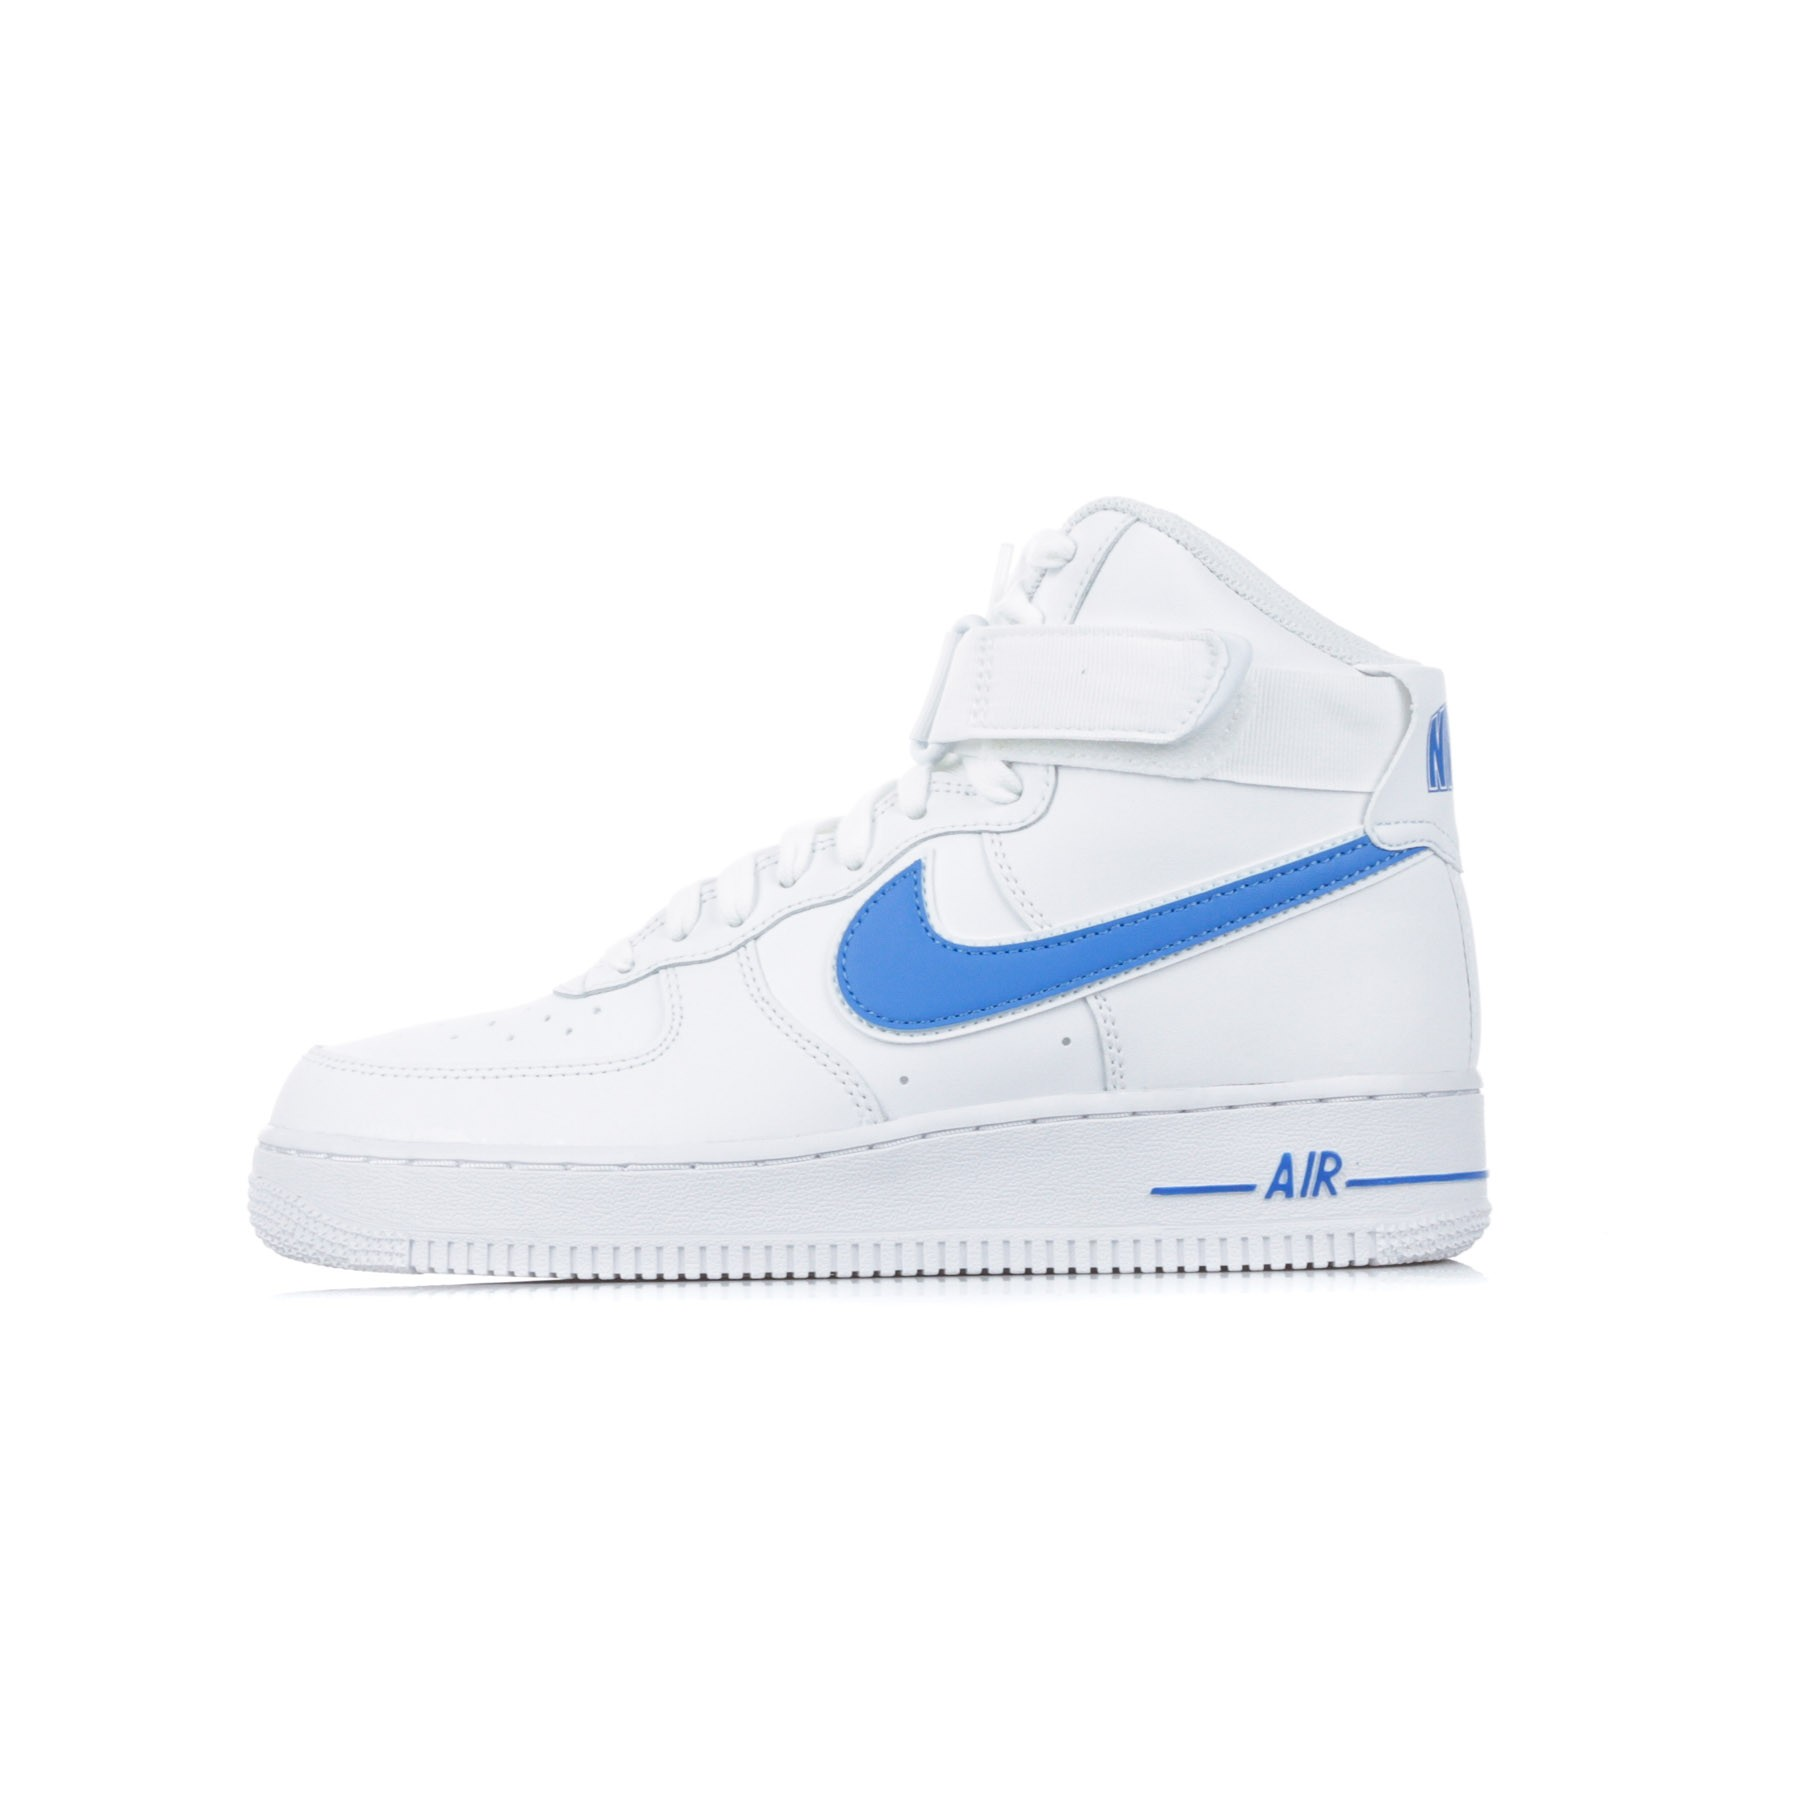 Available Now Nike Air Force 1 High